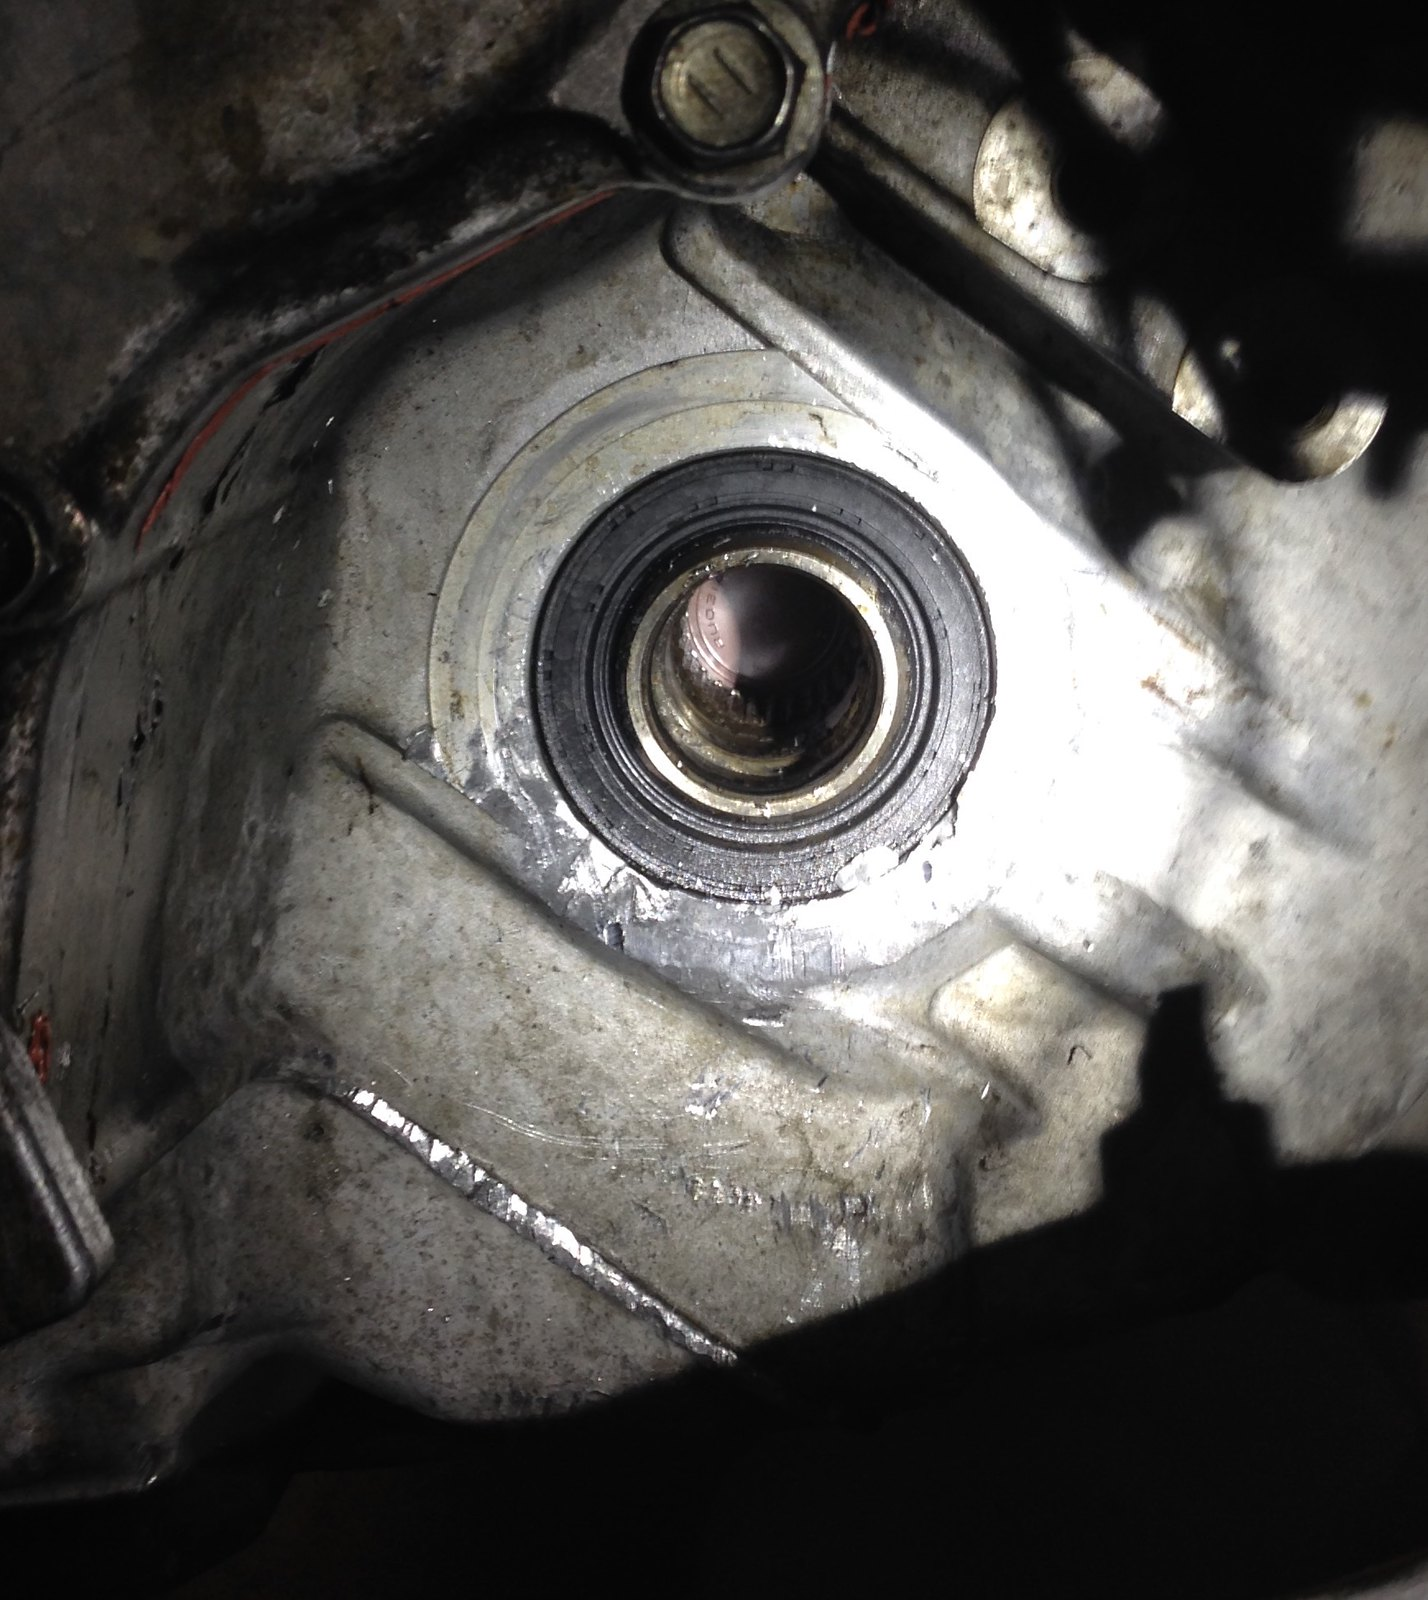 2002 Volvo S60 Transmission: Notice My Intermediate Shaft Splines Are Not Rusty At All